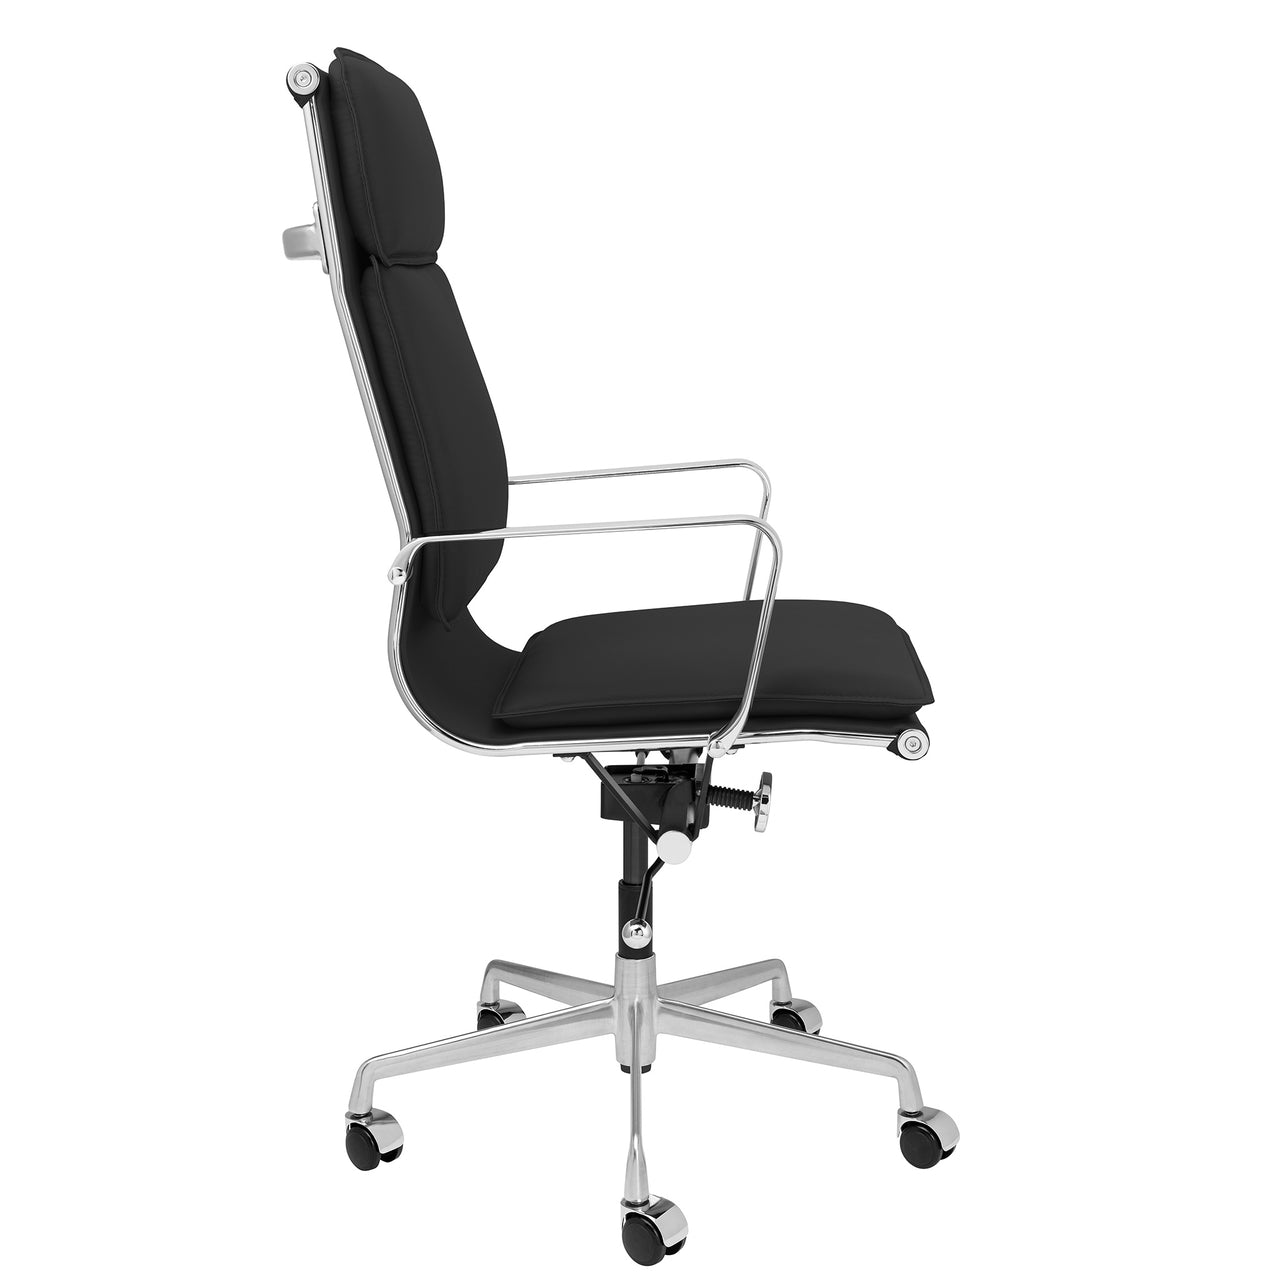 Lexi Tall Back Soft Pad Office Chair (Black)